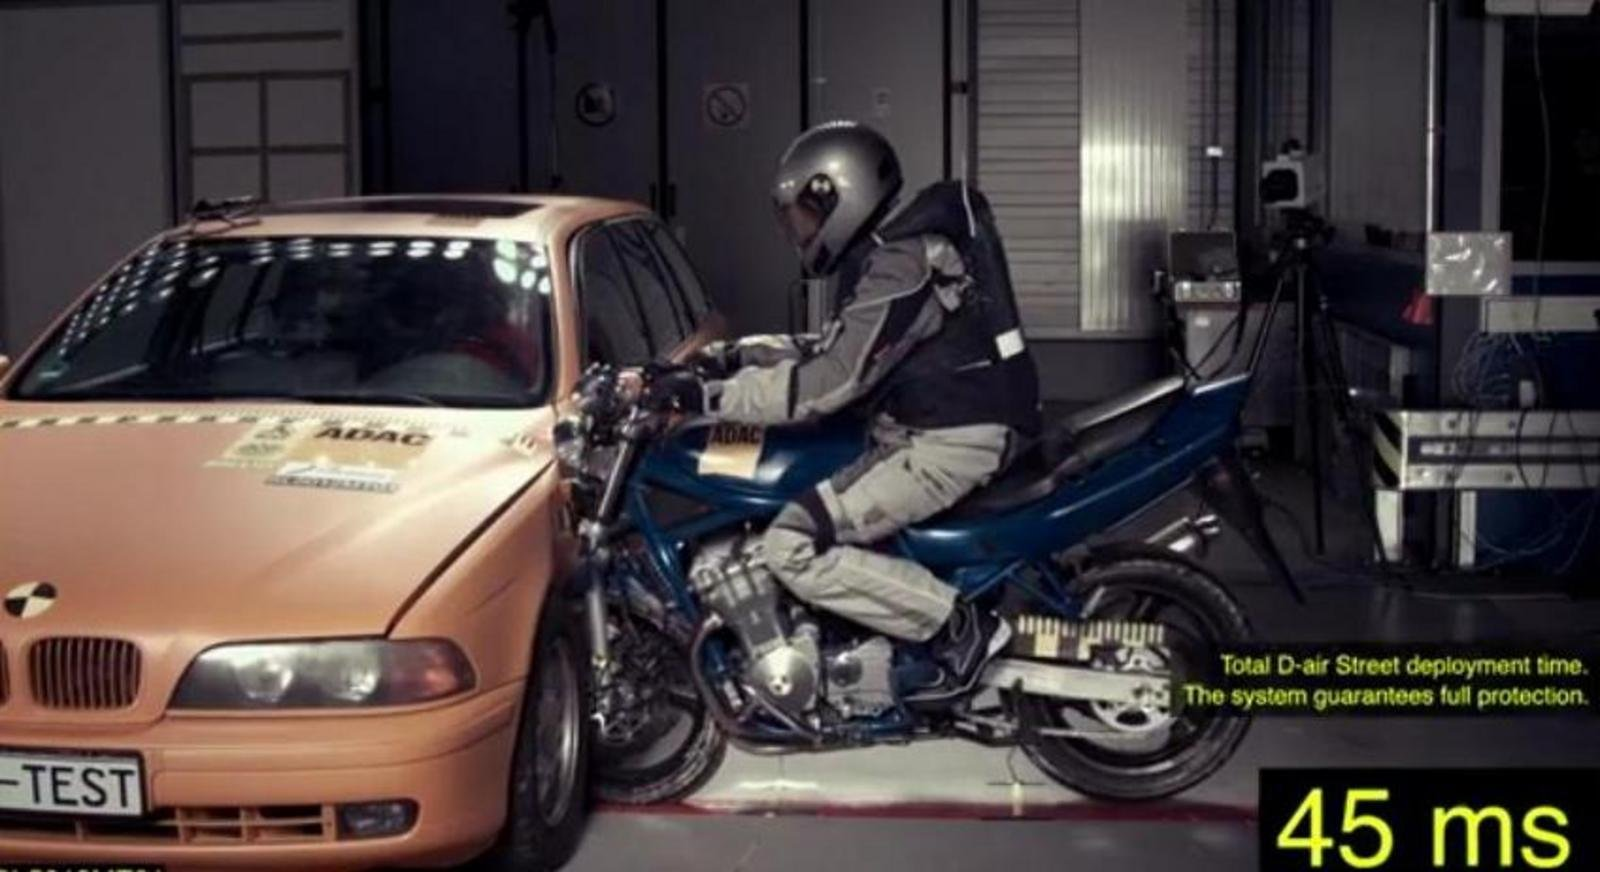 dainese 39 s d air suit with integrated airbags was crash. Black Bedroom Furniture Sets. Home Design Ideas